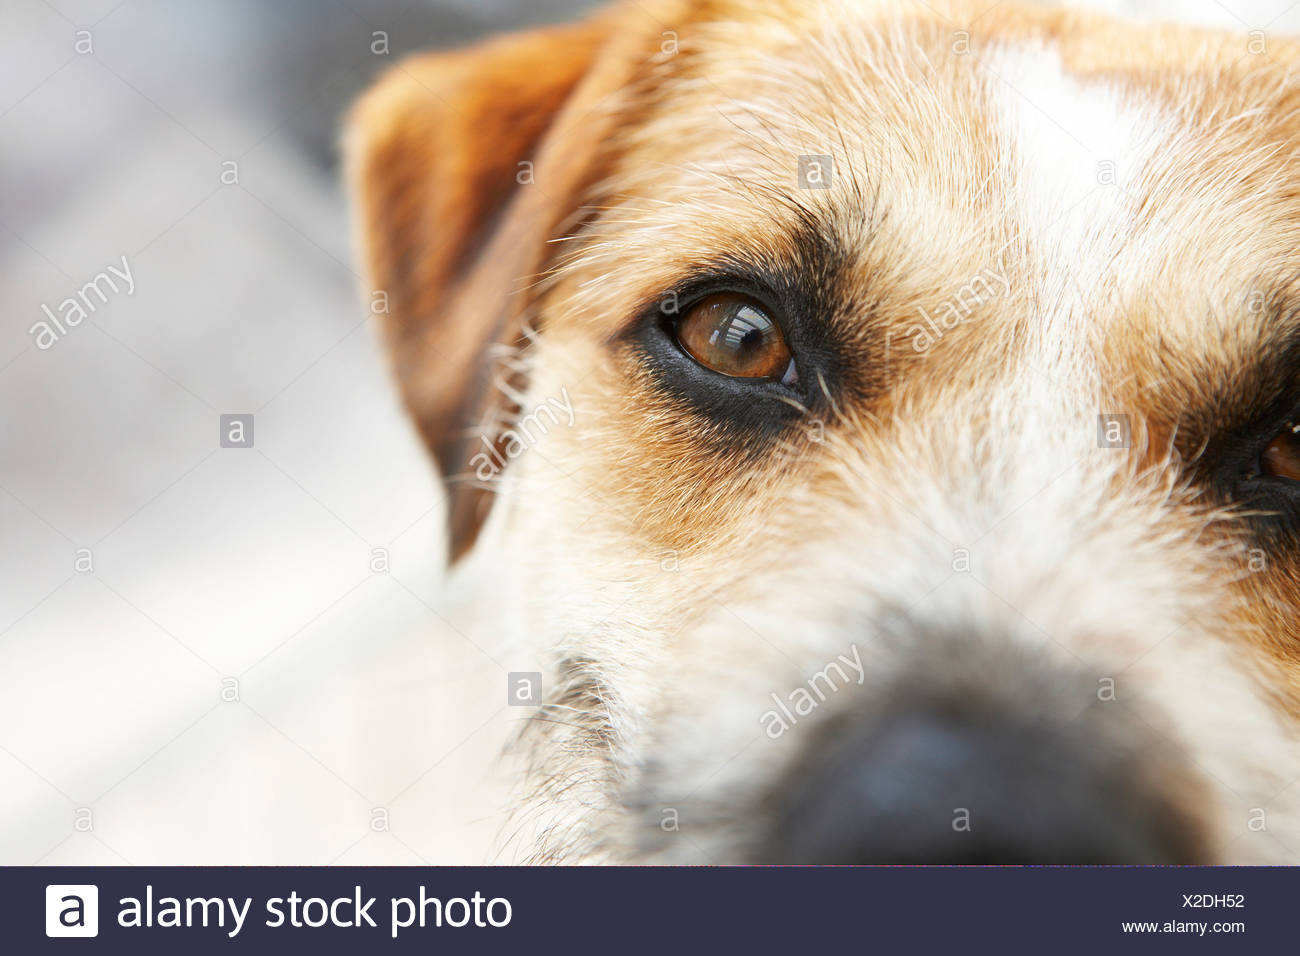 Jack Russell Terrier, close-up - Stock Image